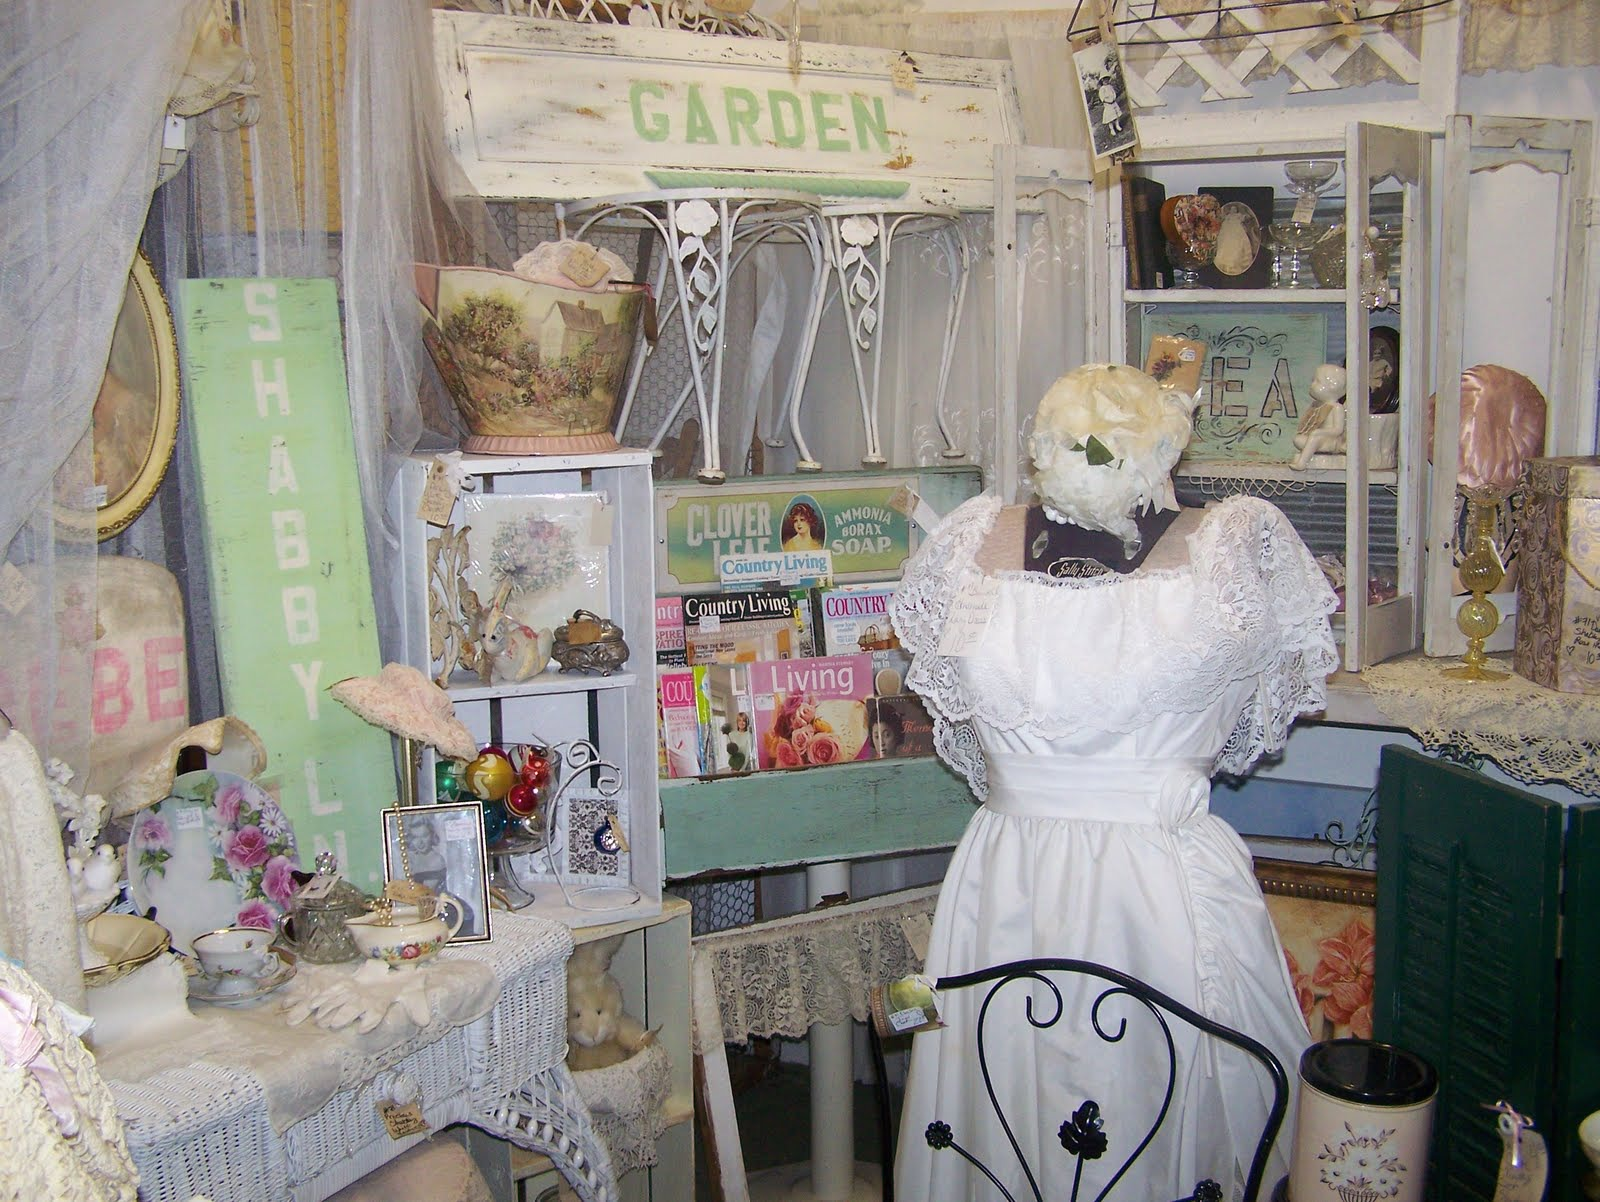 Country decorating ideas flea market style - Dot Closet What Sells And What Doesn T Flea Market In Missouri